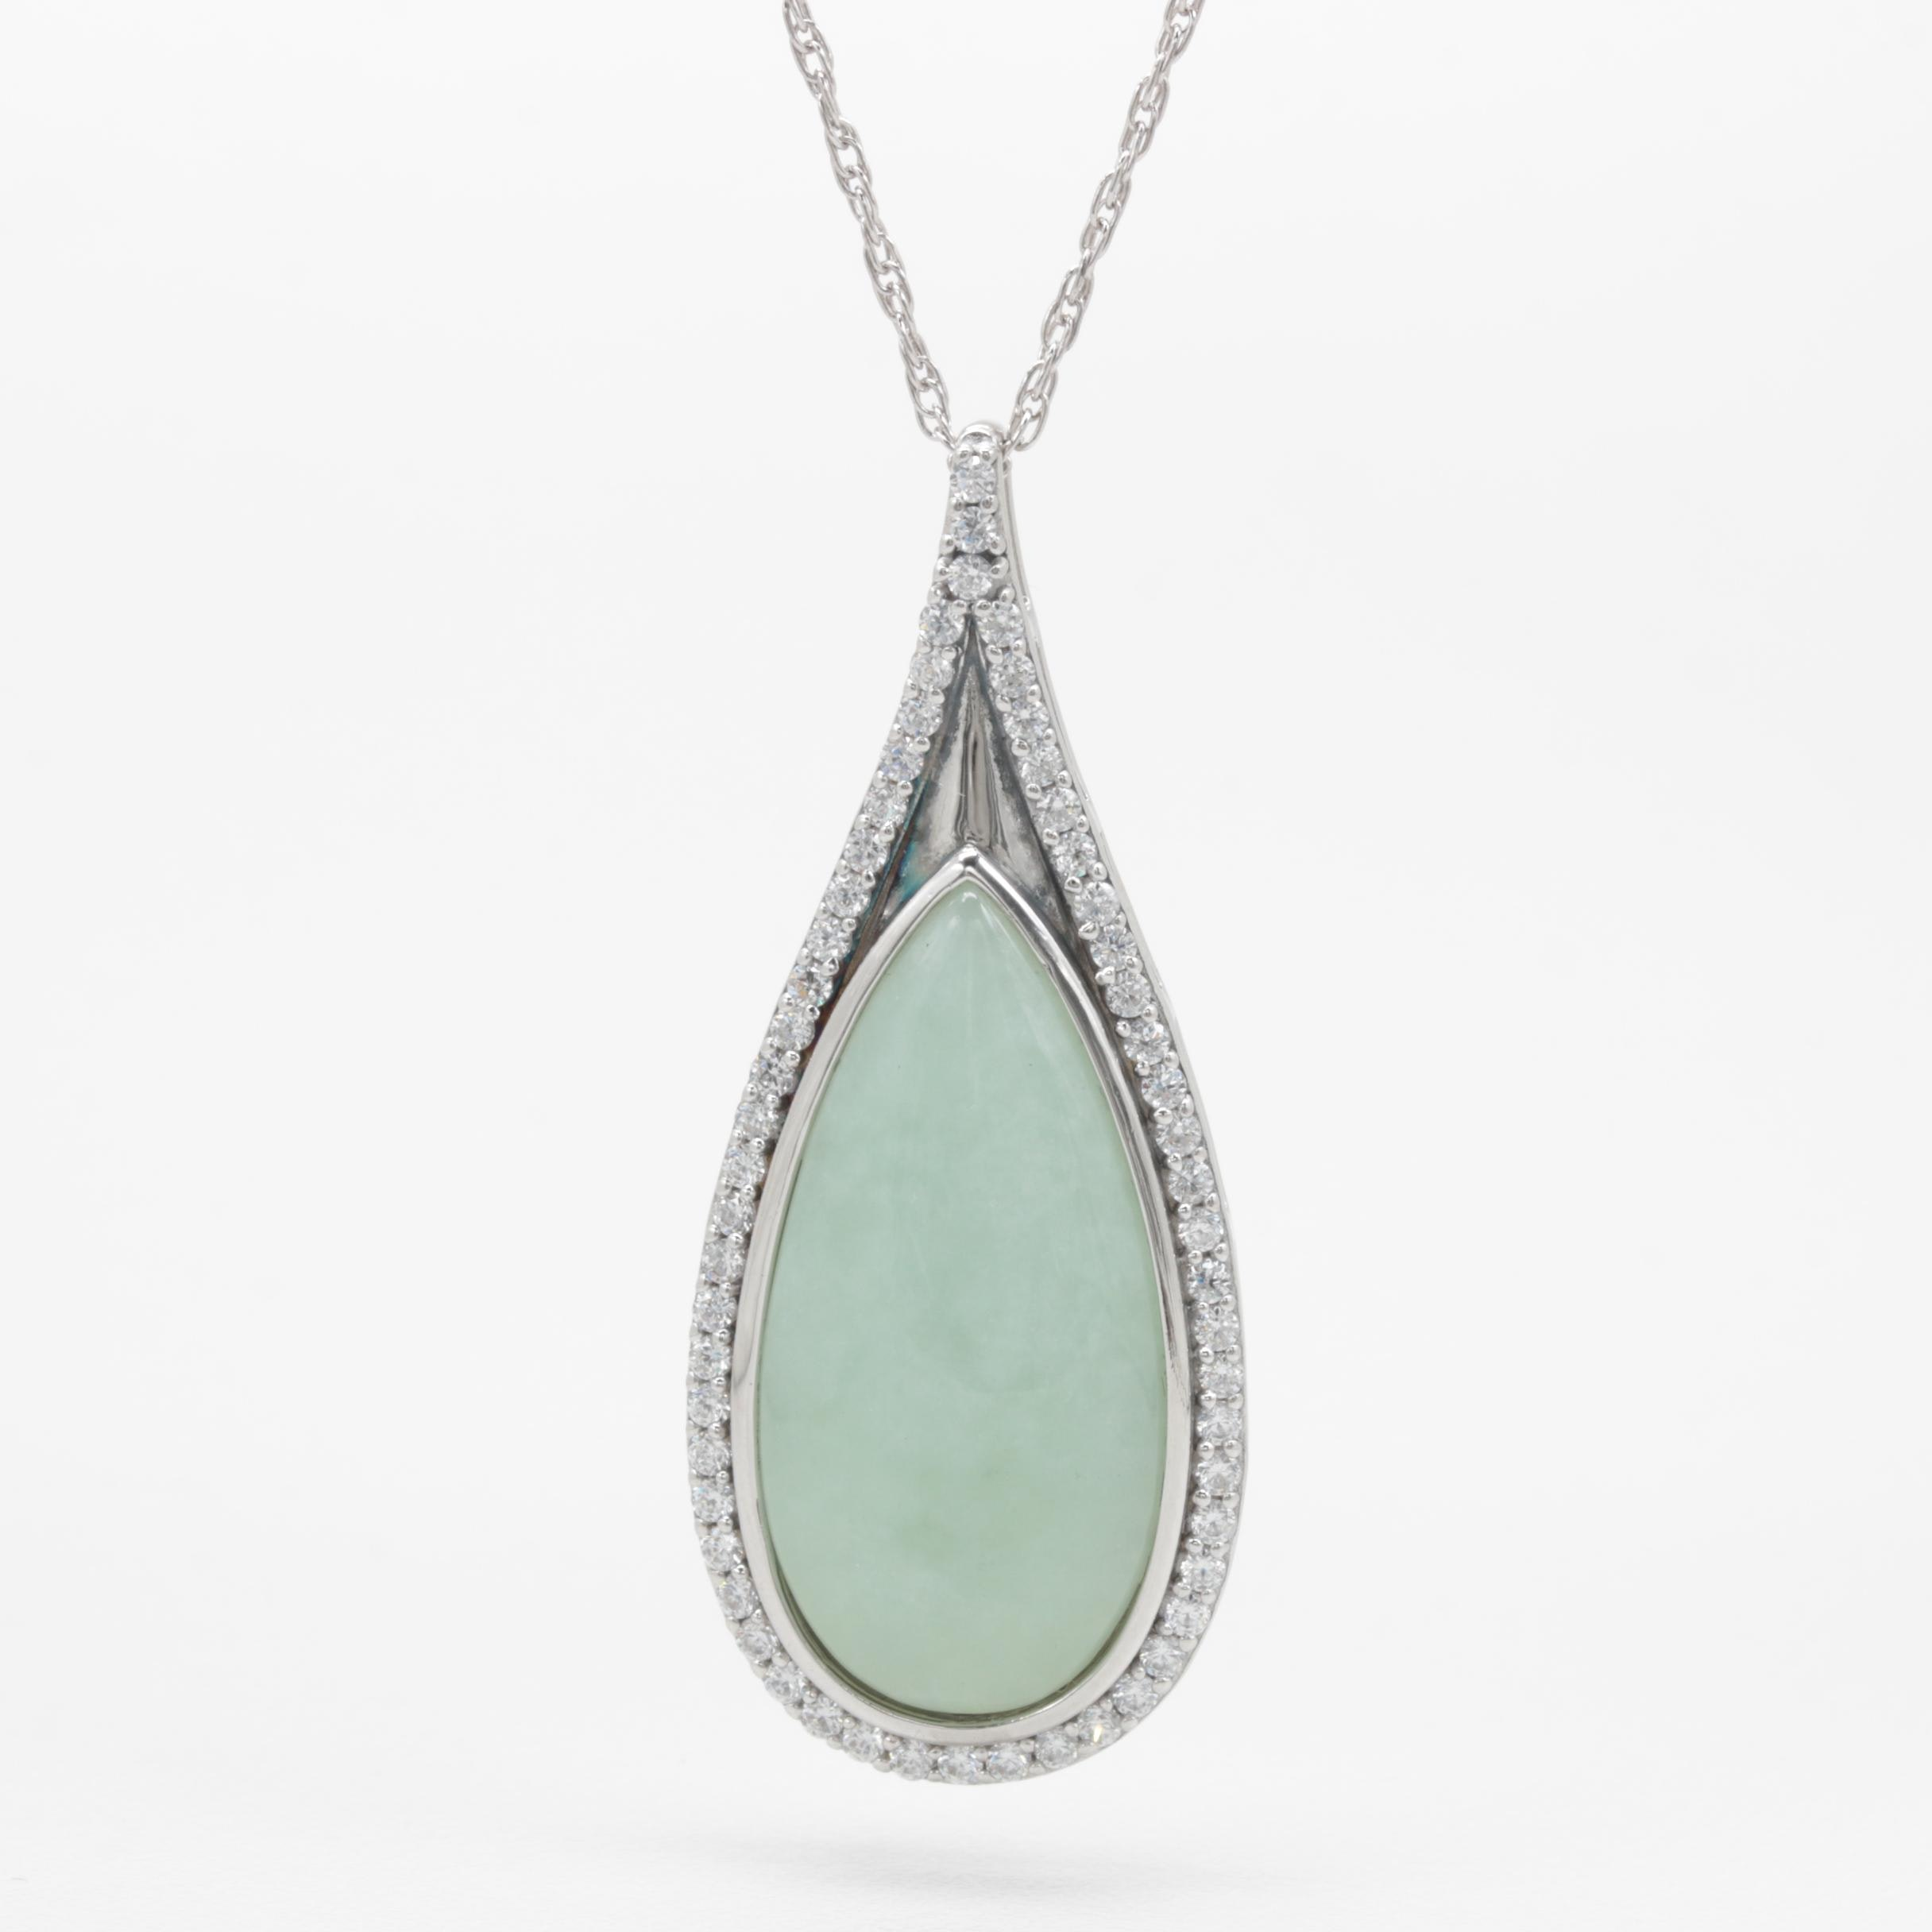 Sterling Silver Jadeite and Cubic Zirconia Pendant Necklace